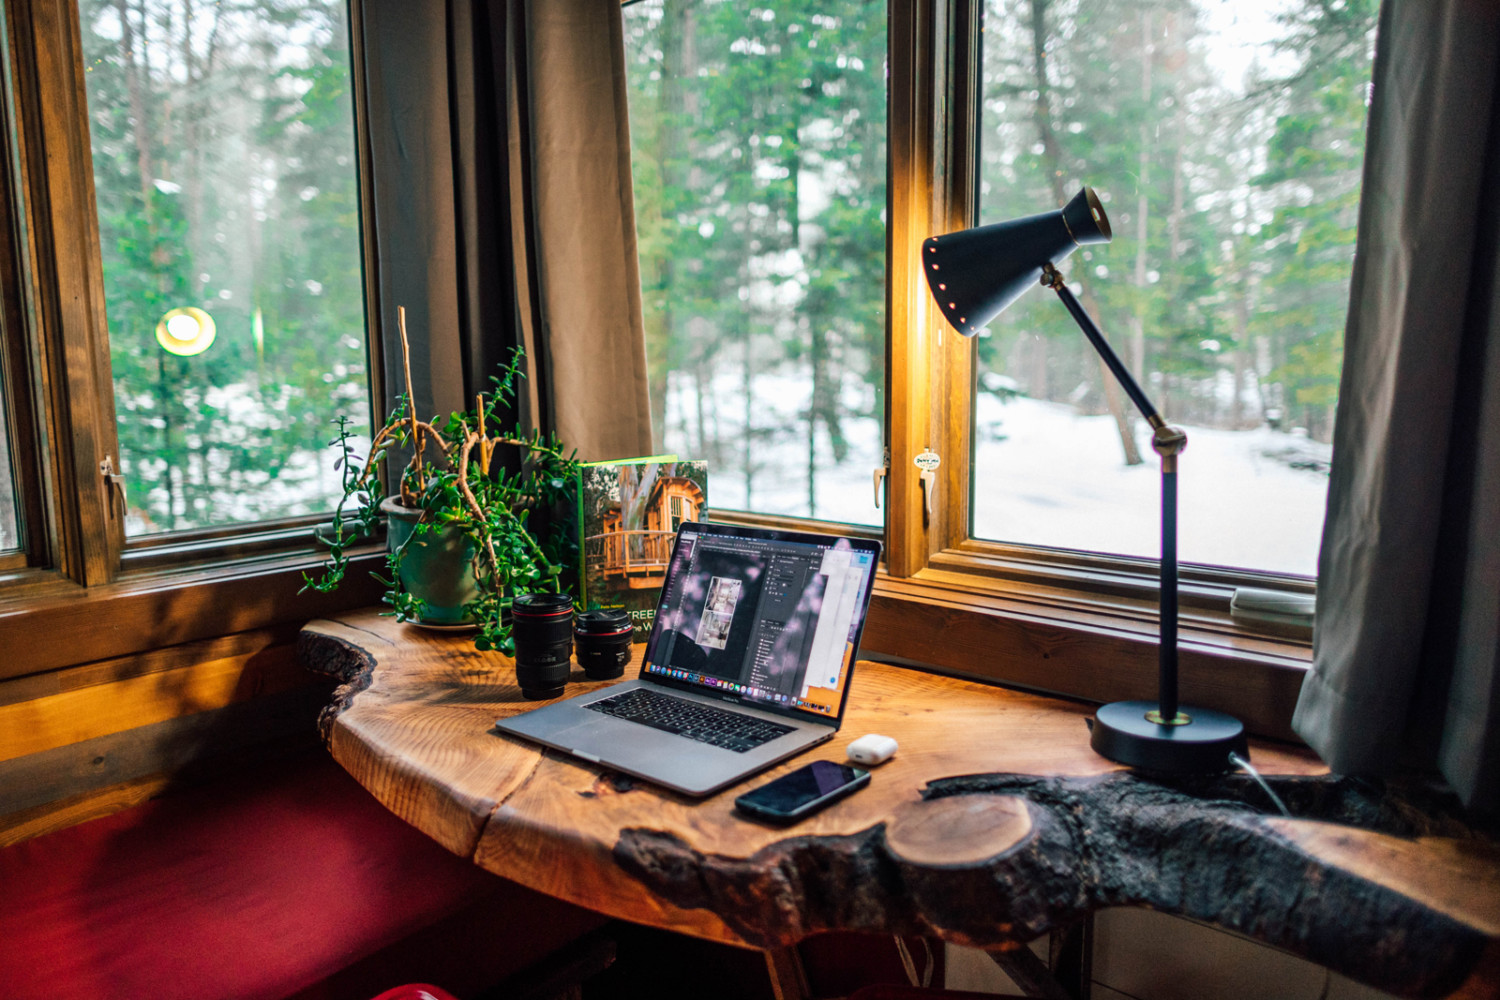 decluttered inviting office space for working from home